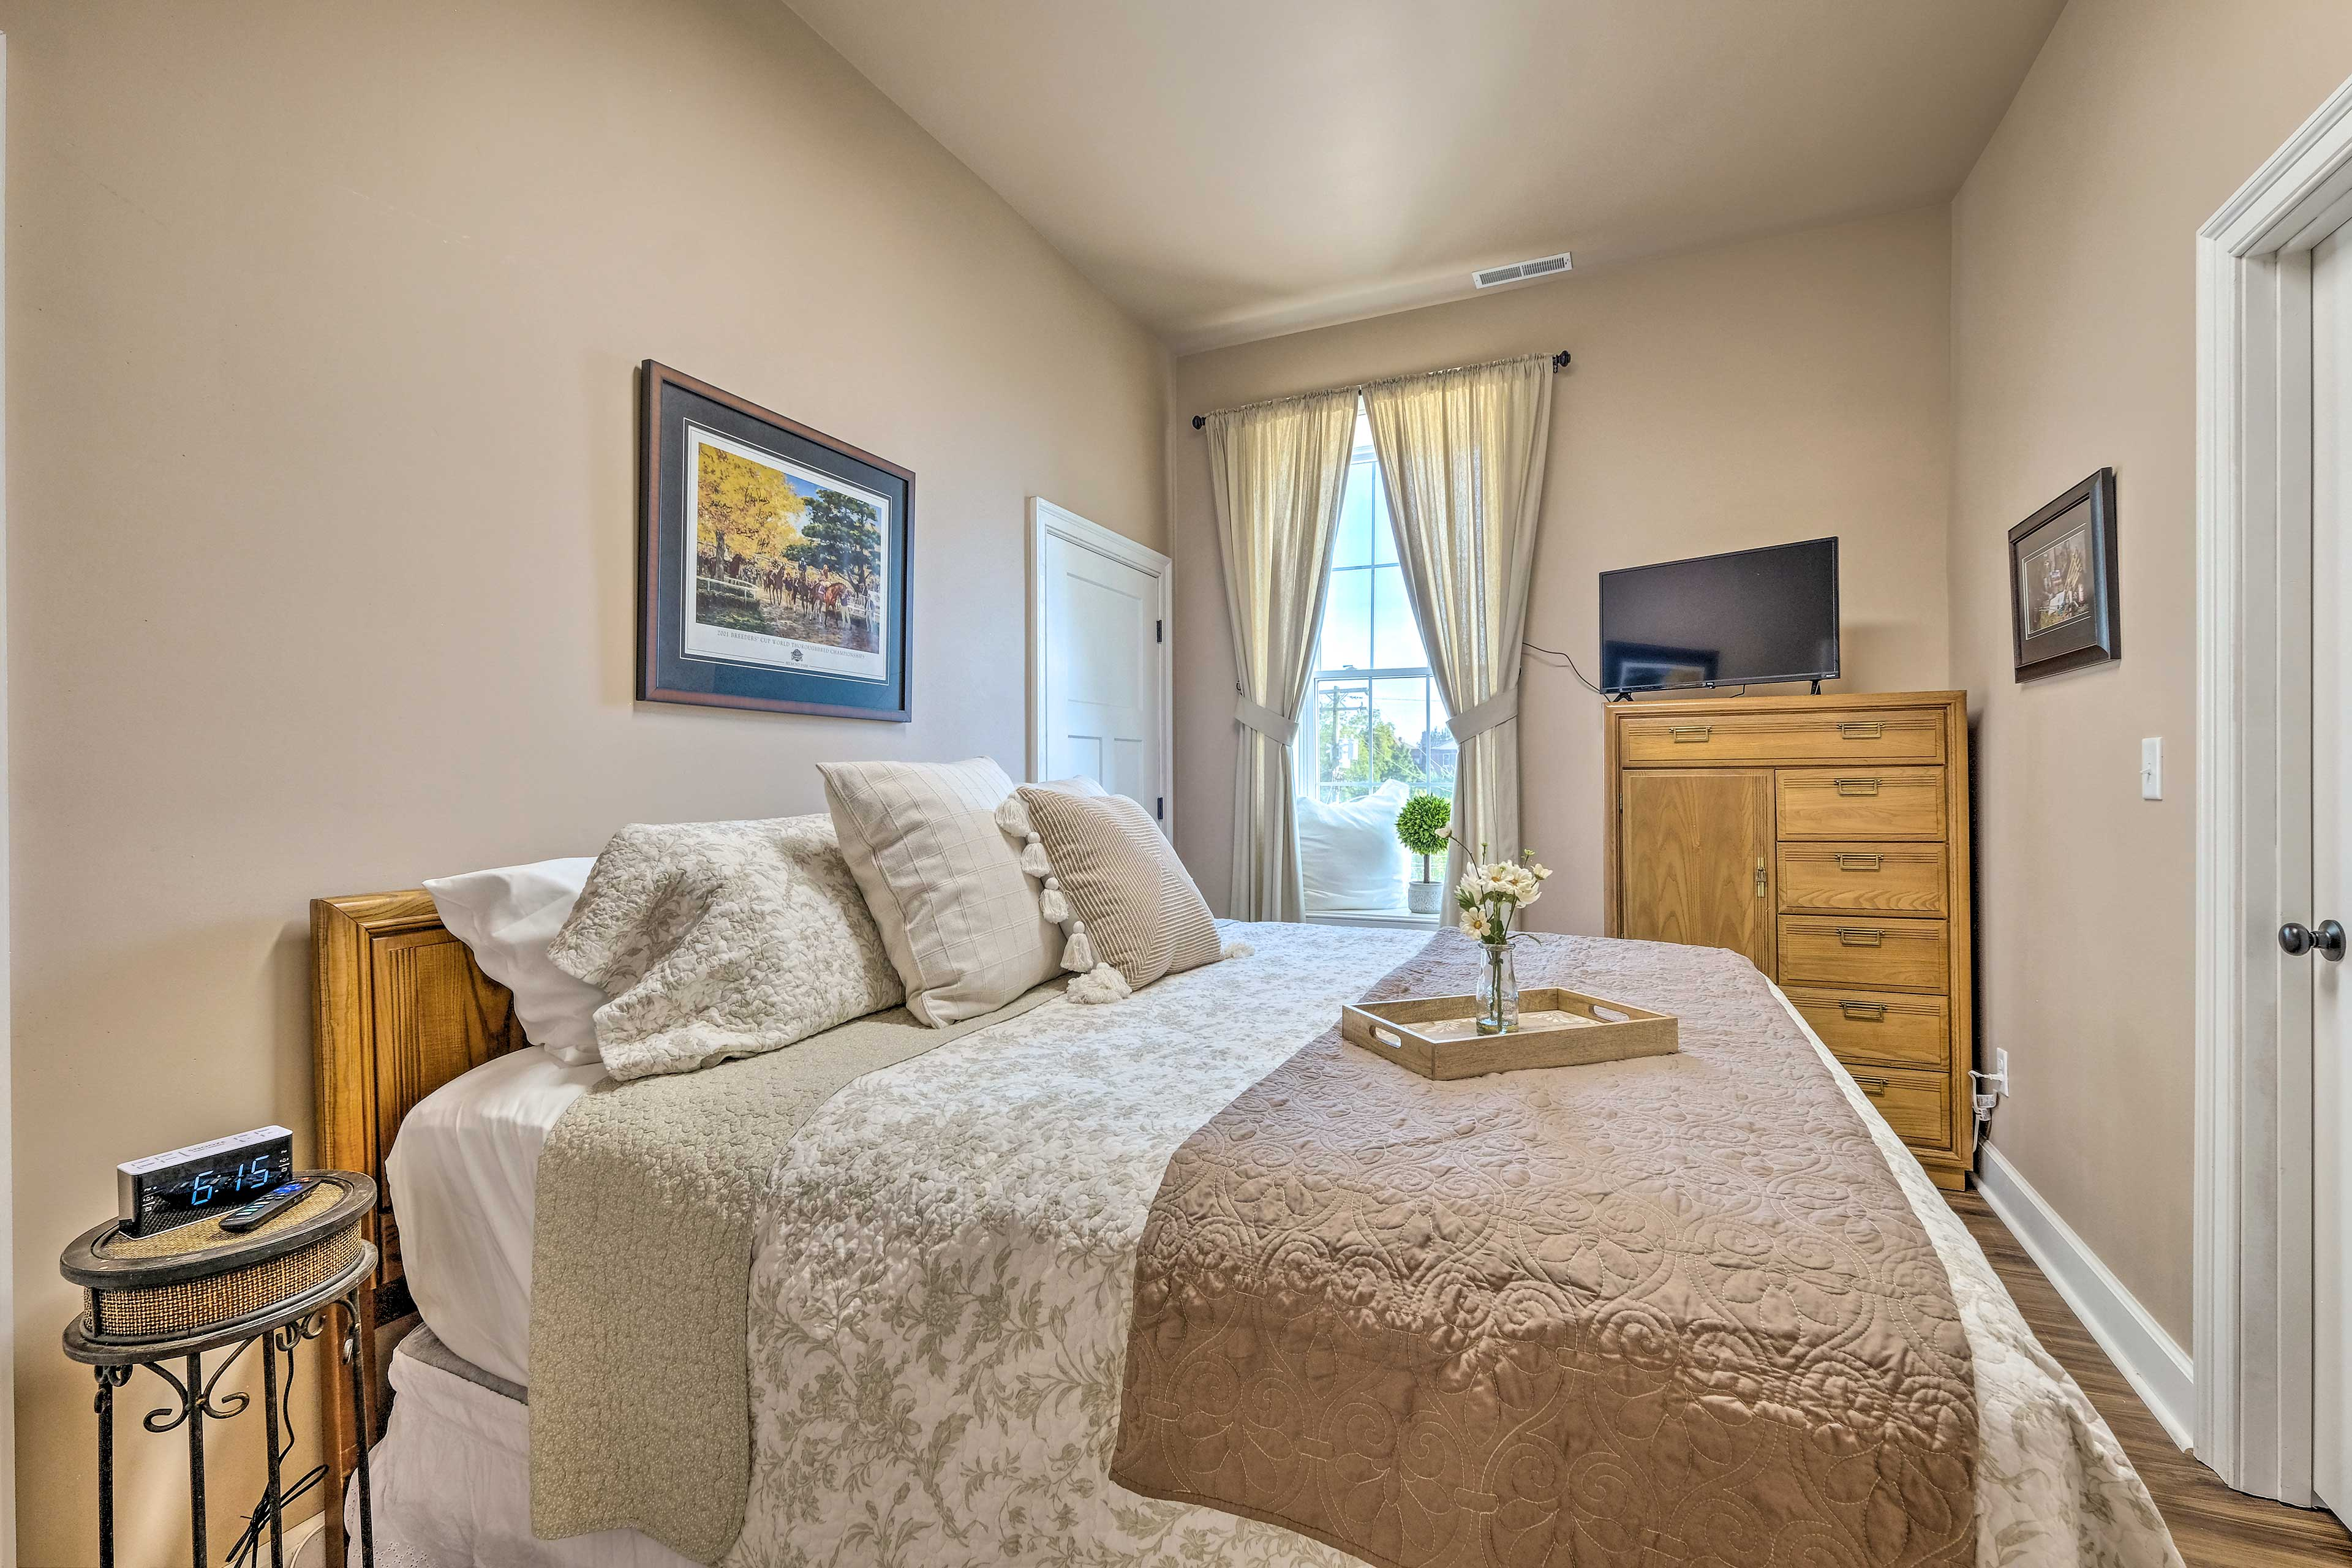 Bedroom 2 | King Bed | Single-Story Interior